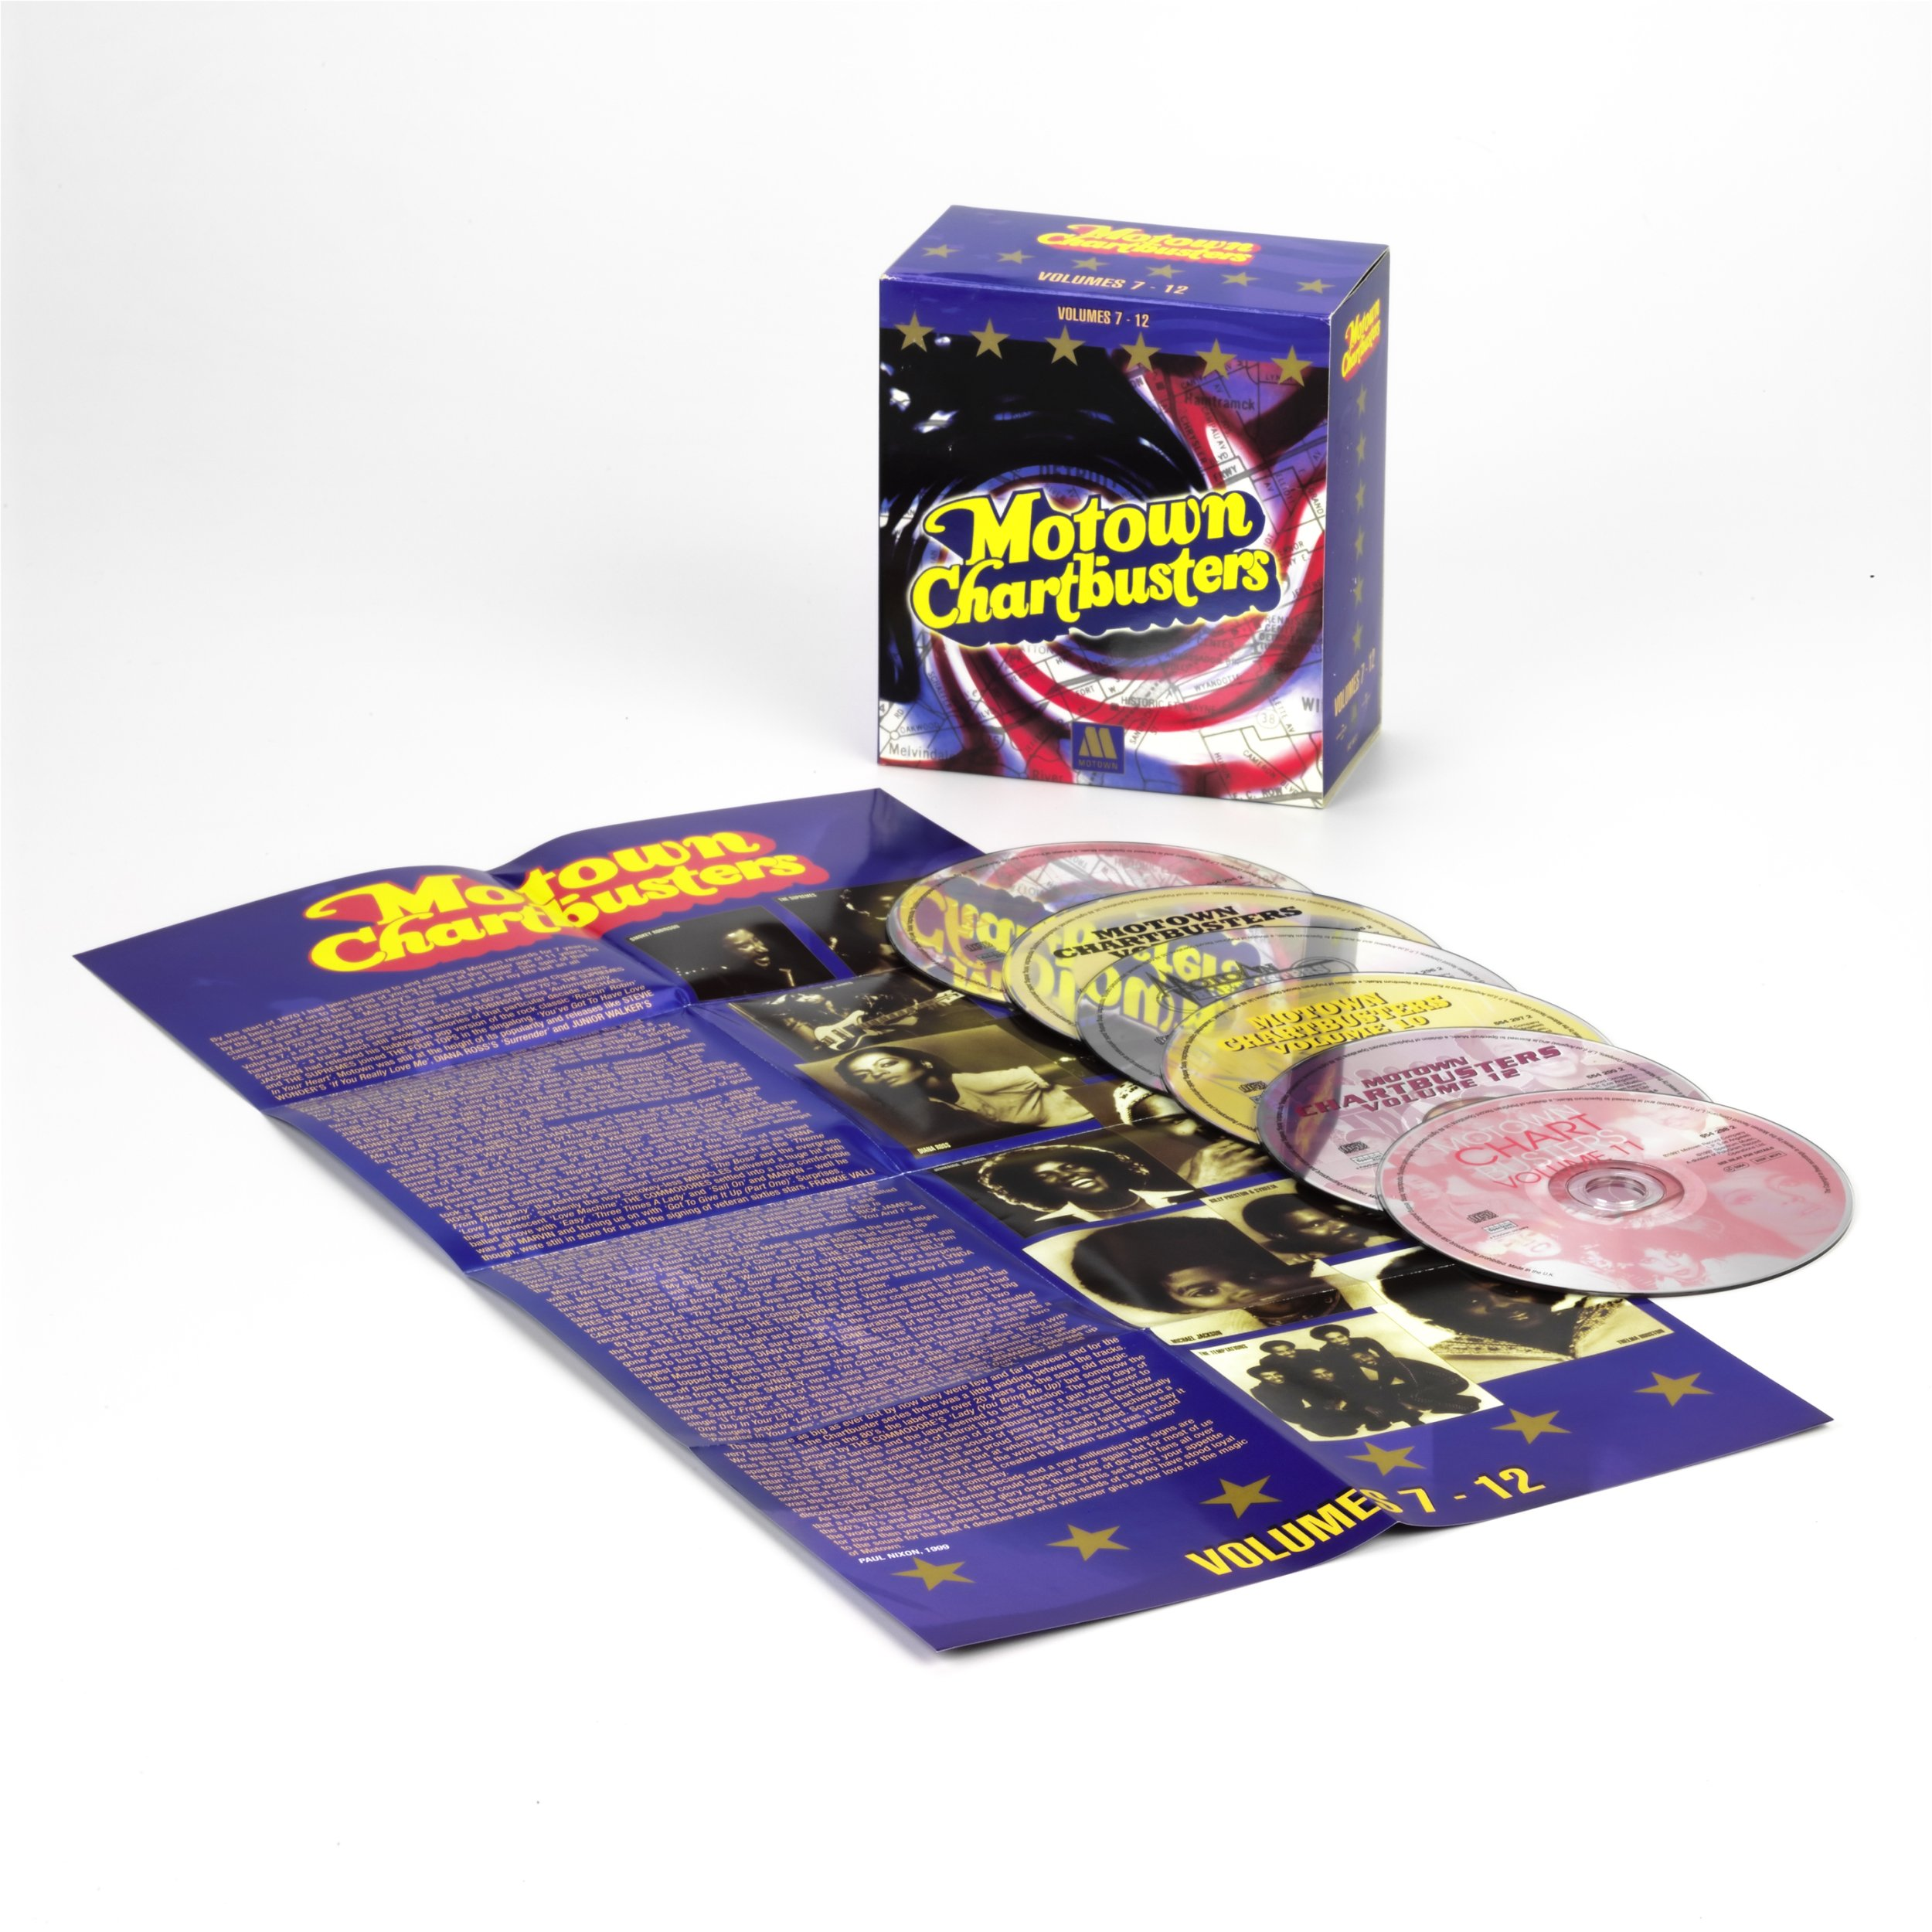 Motown Chartbusters 2